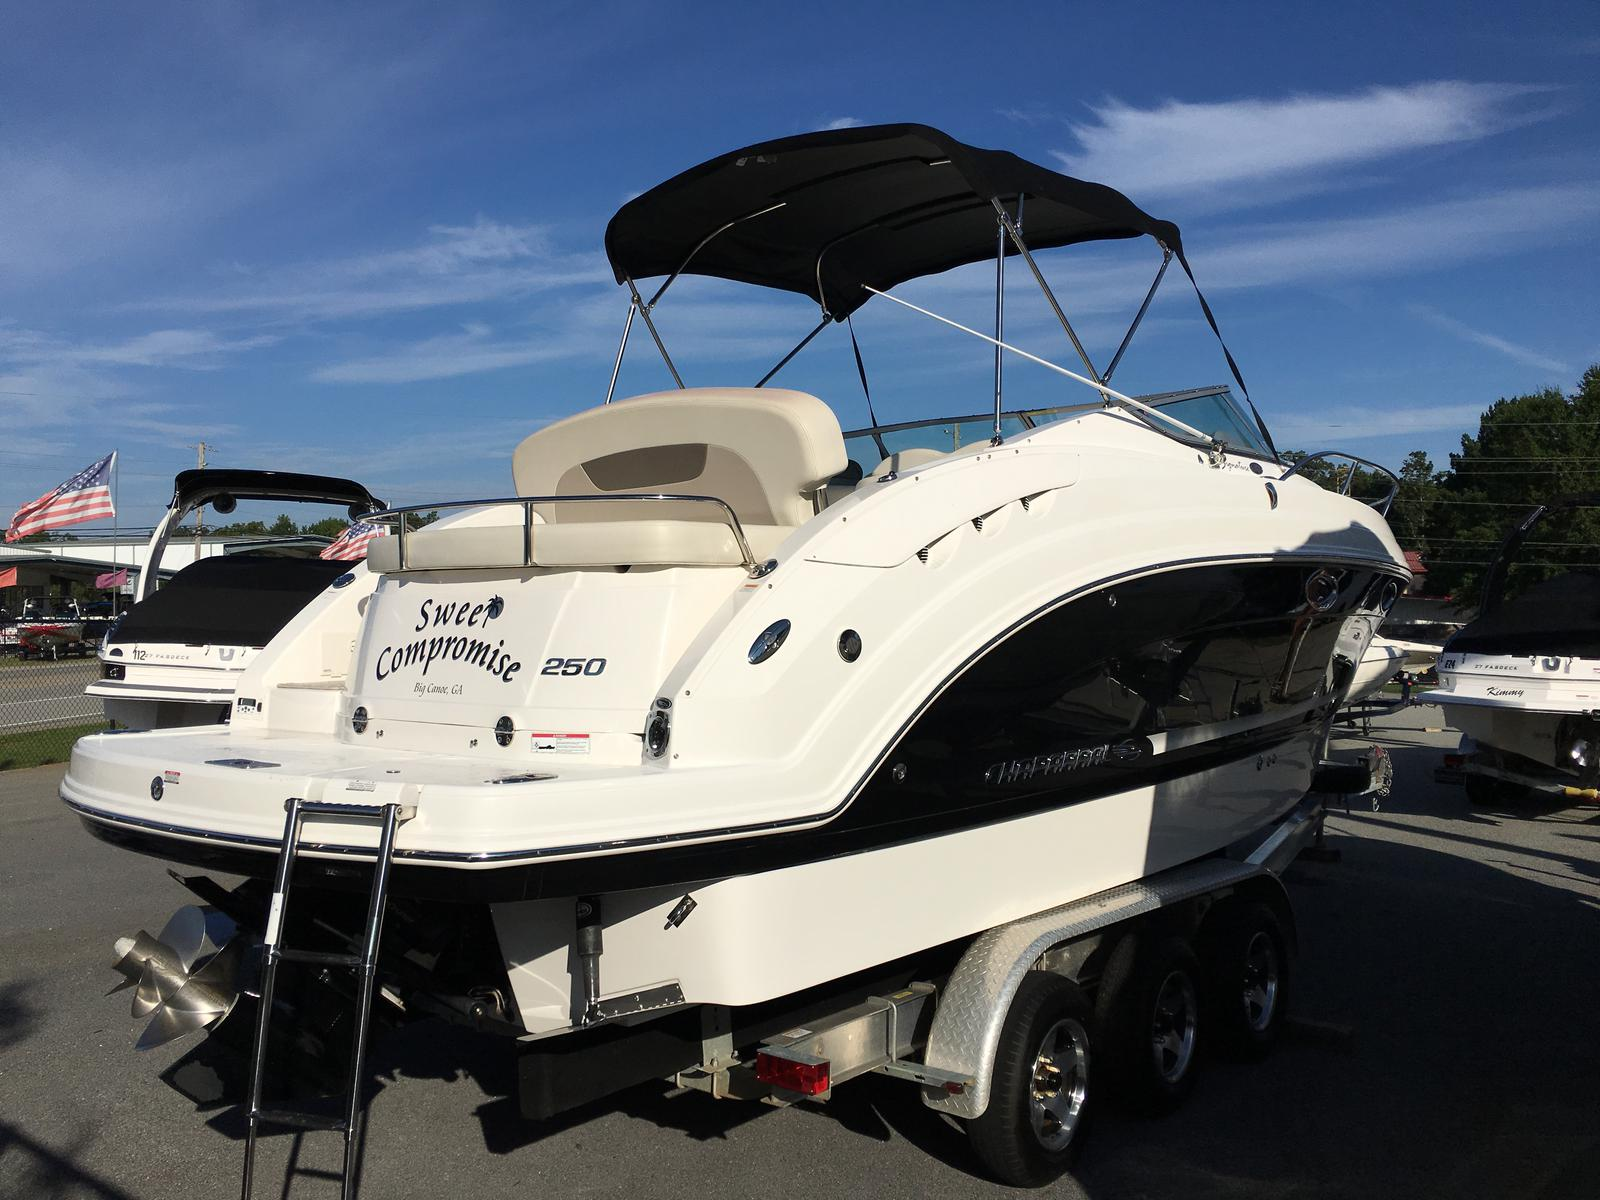 Chaparral Signature 250